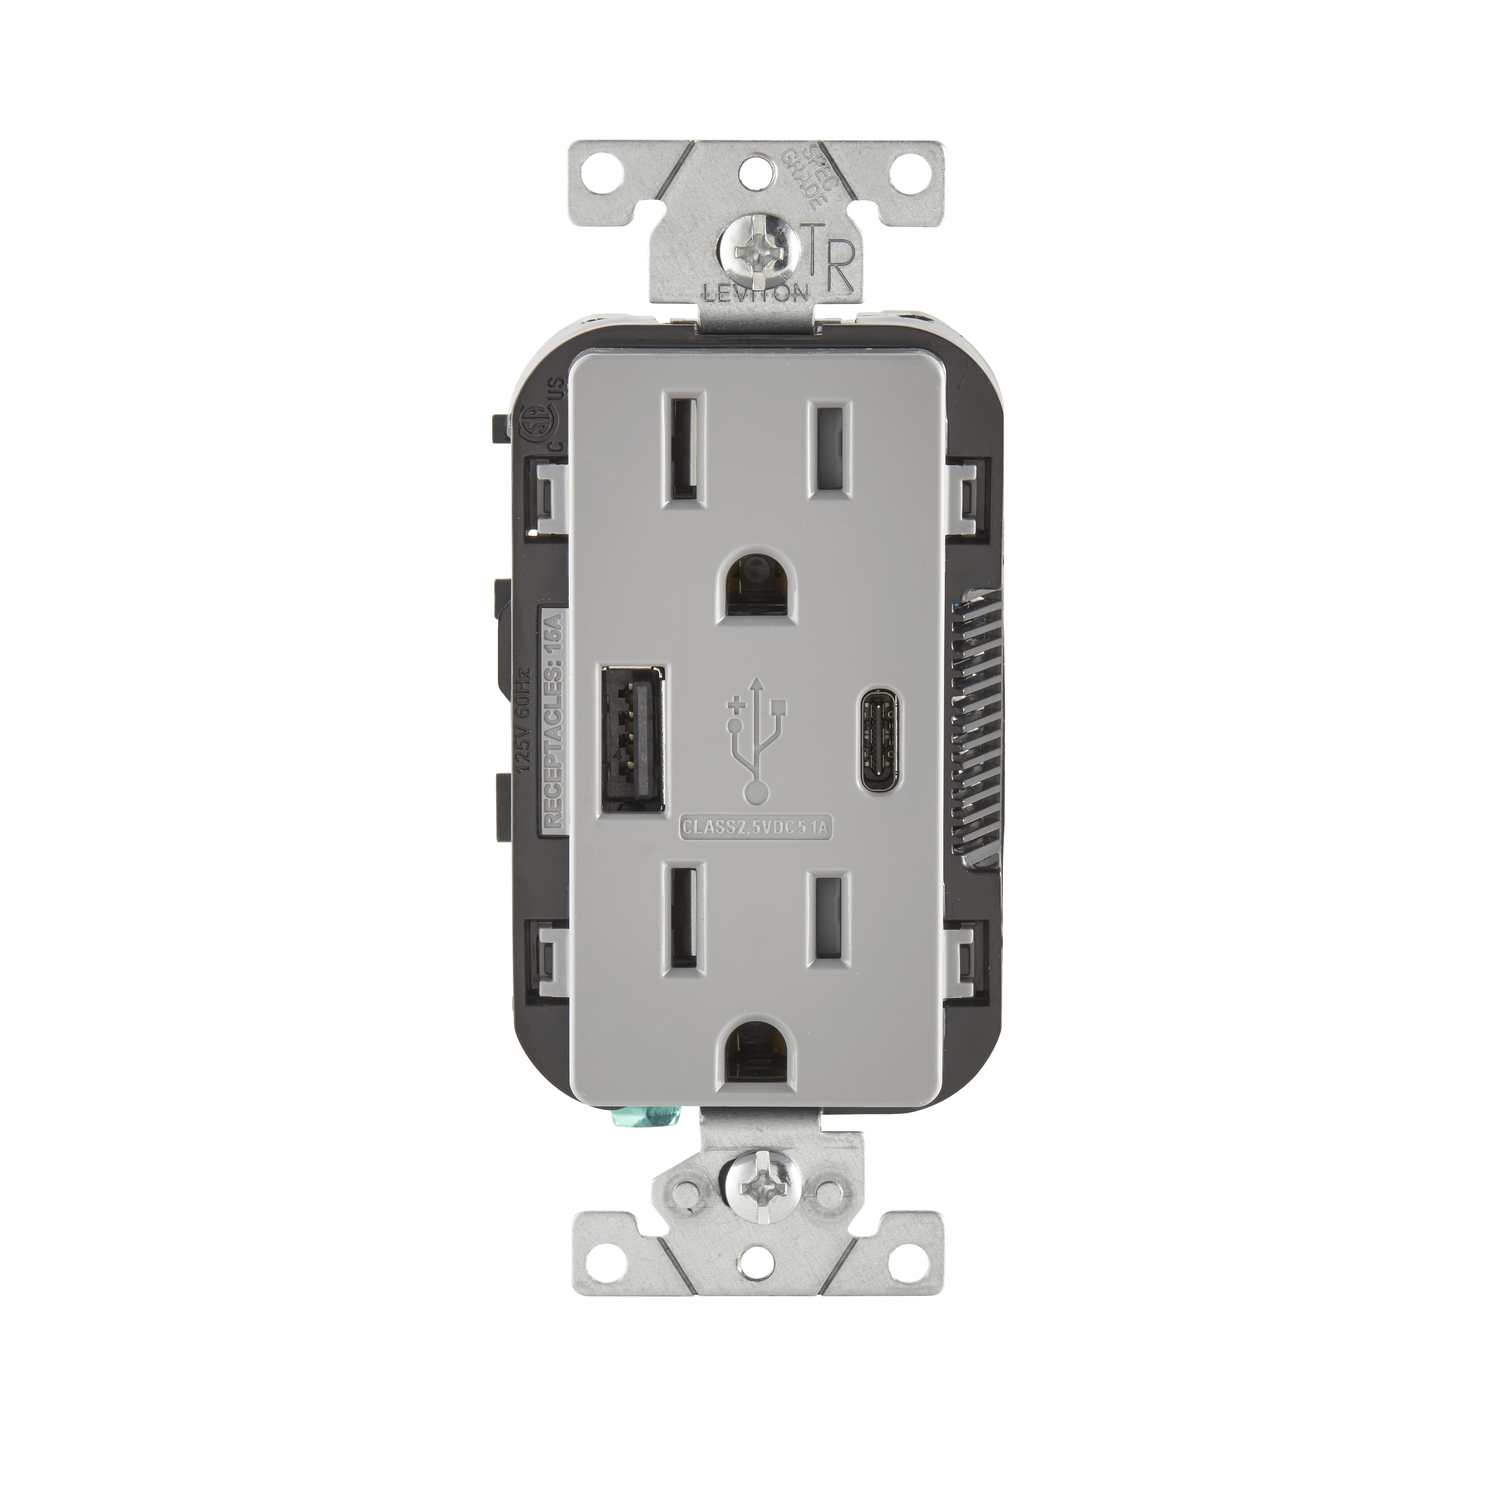 Leviton Decora 15 amps 125 volt Gray Outlet and USB Charger 5-15R 1 ...